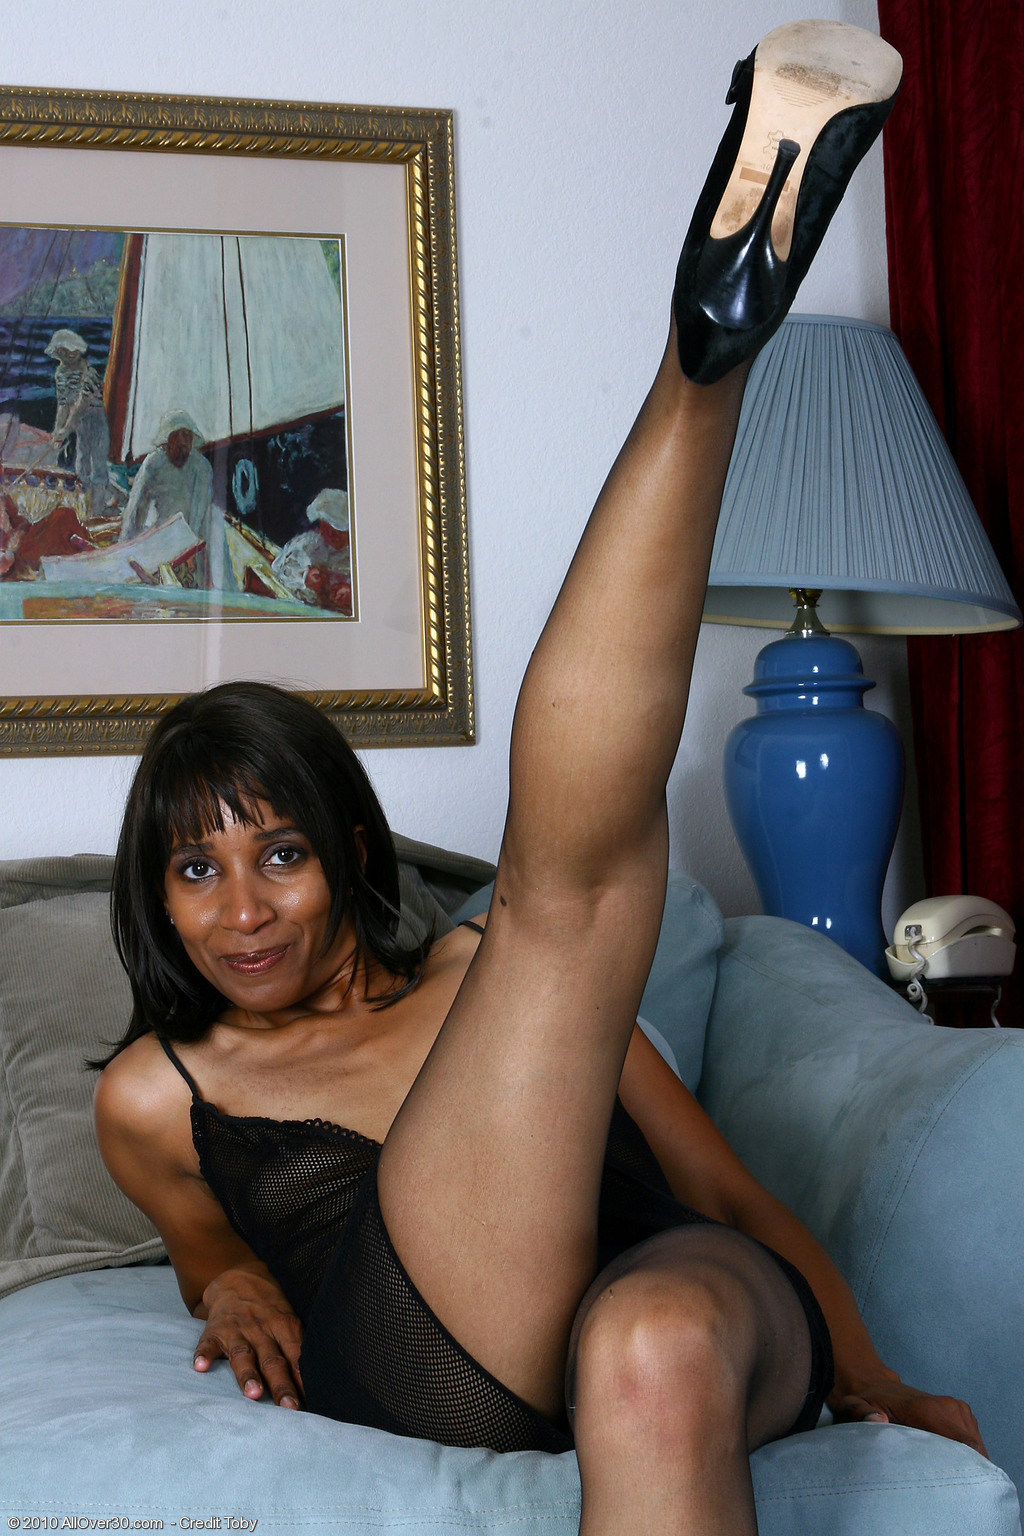 free ebony porn picture galleries